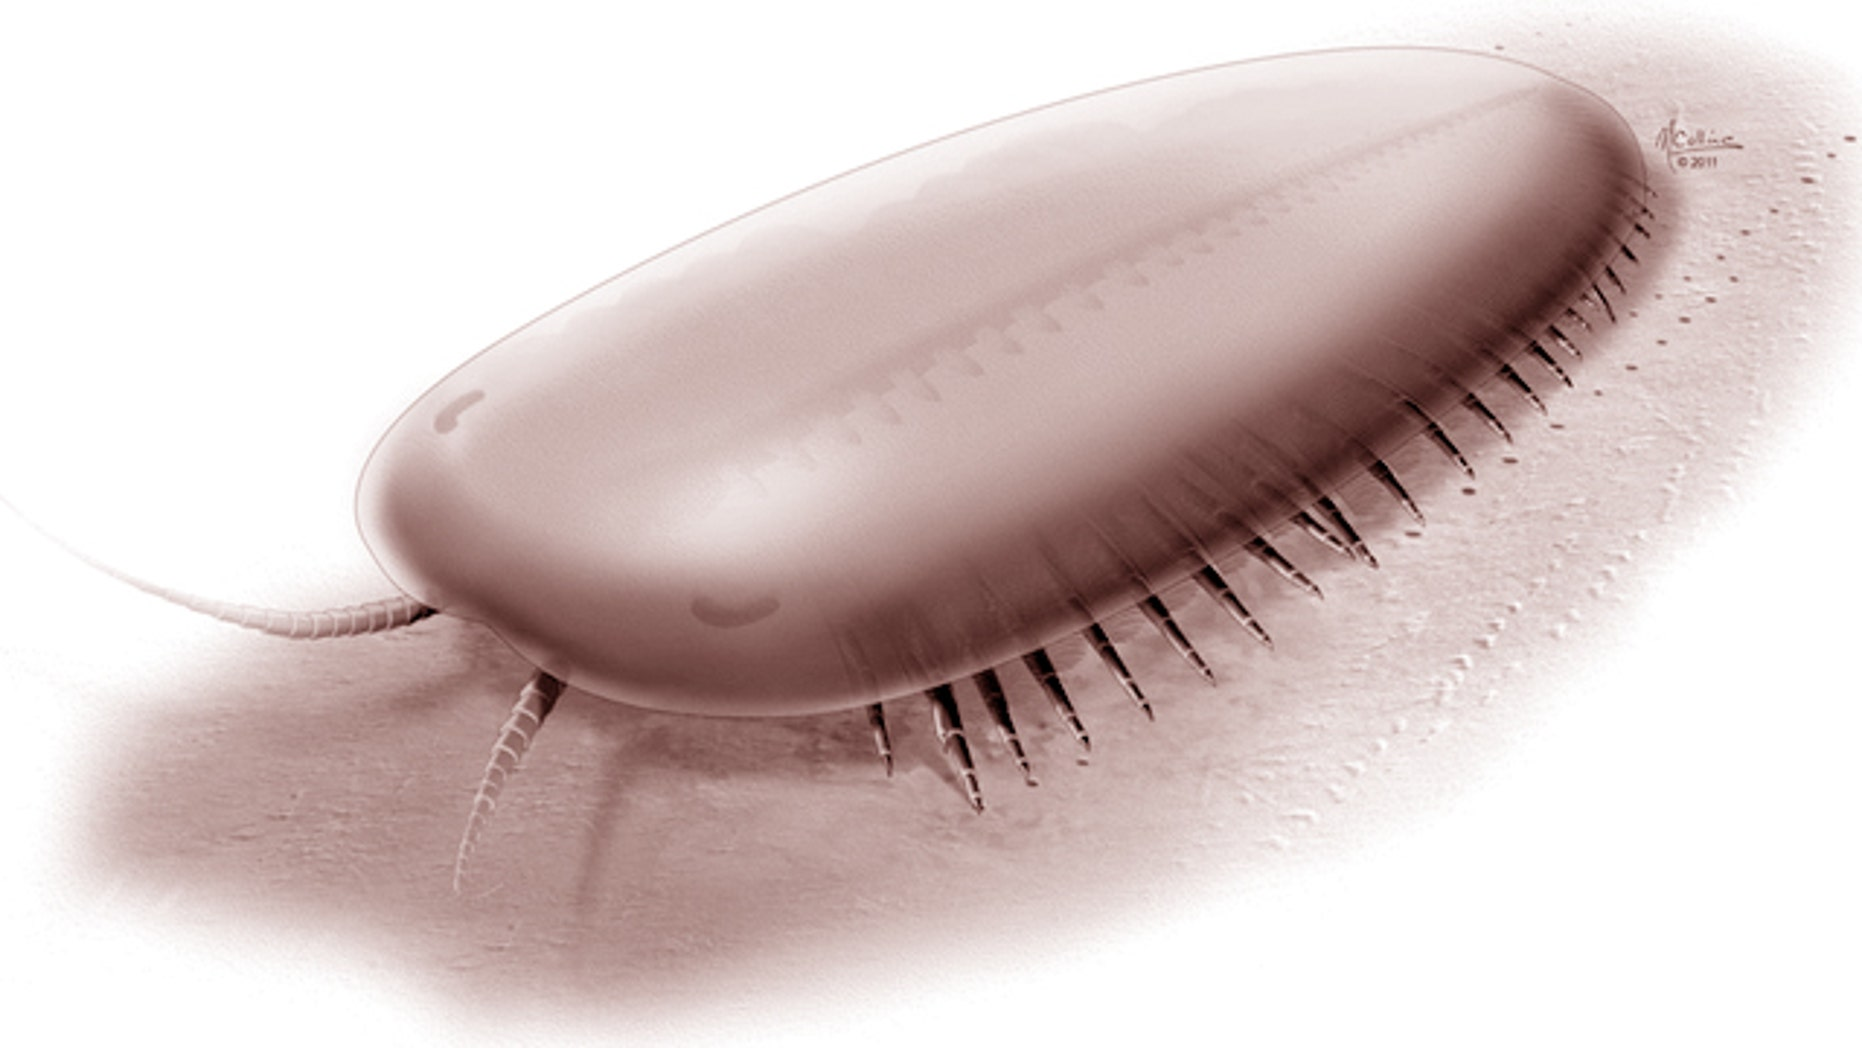 An artist's rendering of a Tegopelte, a foot-long arthropod that lived 500 million years ago.